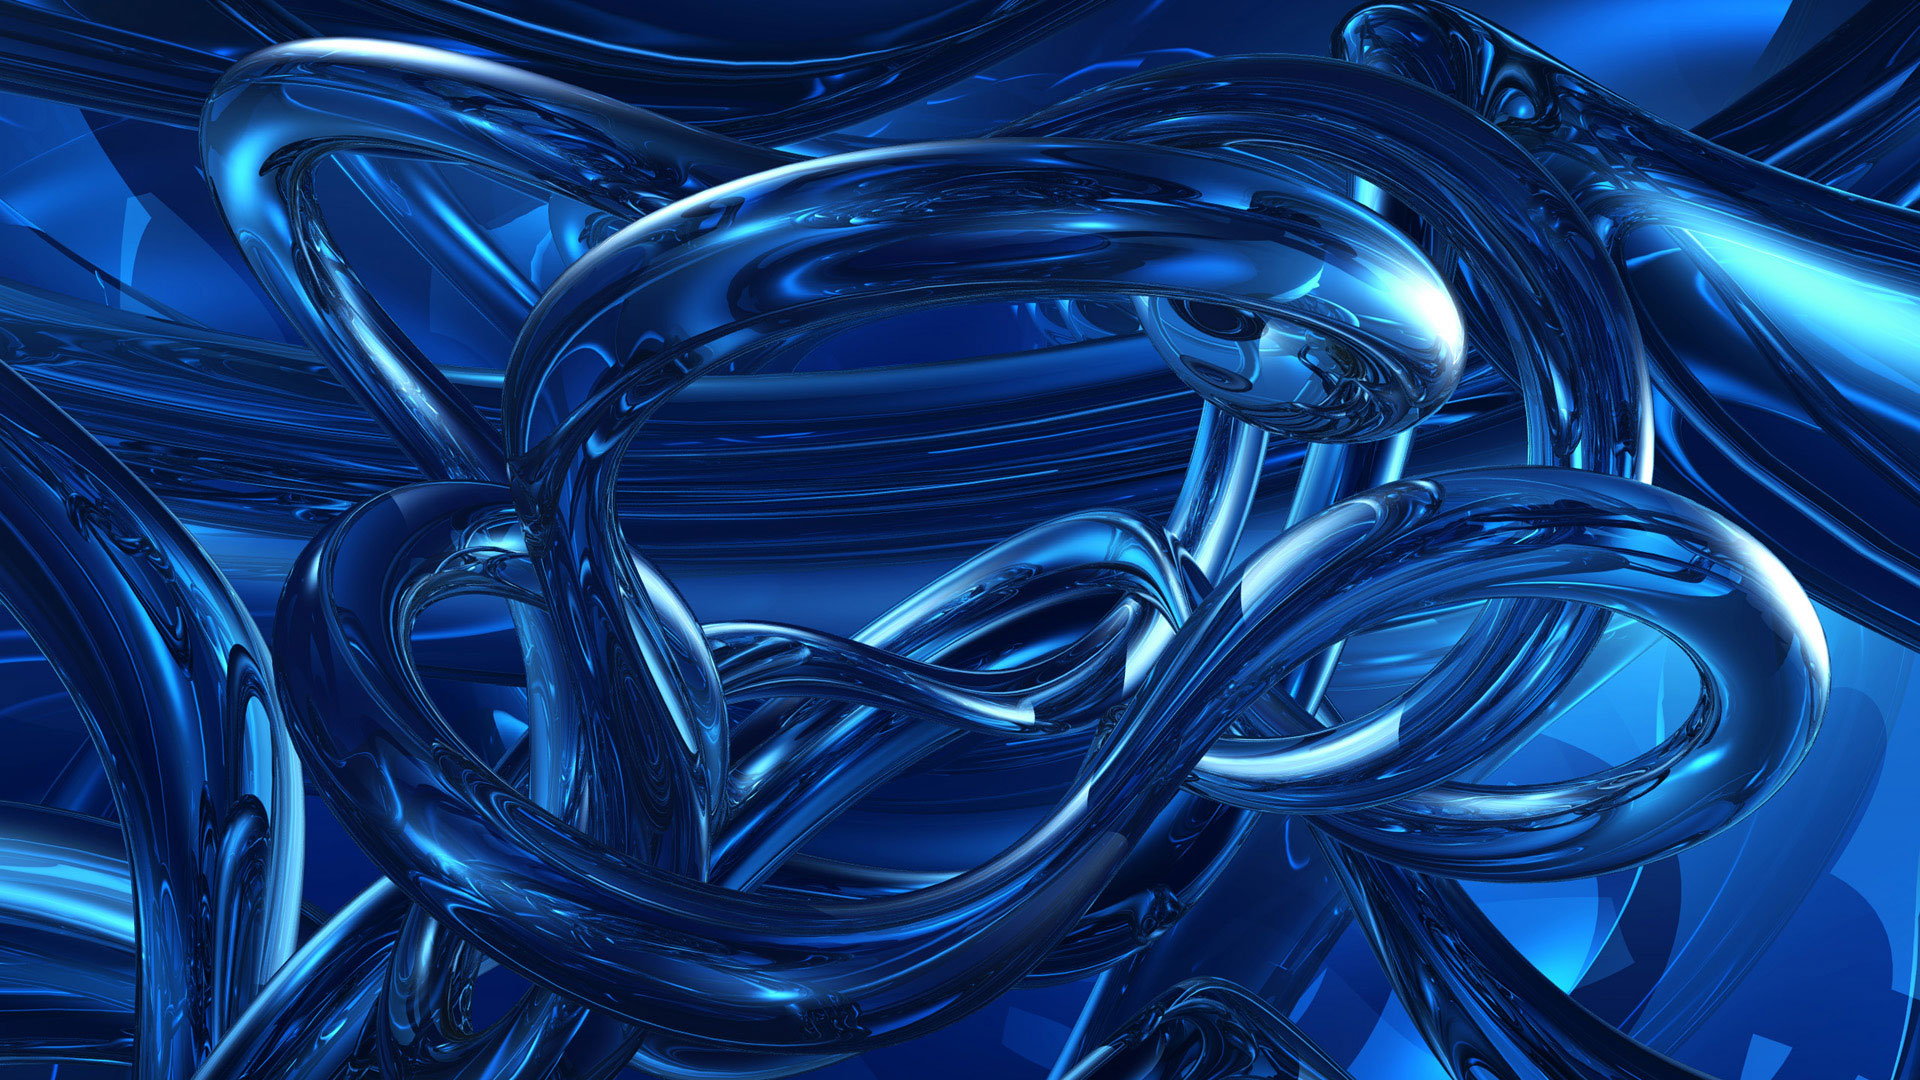 Dark Blue Abstracts Wallpapers HD Wallpapers 1920x1080